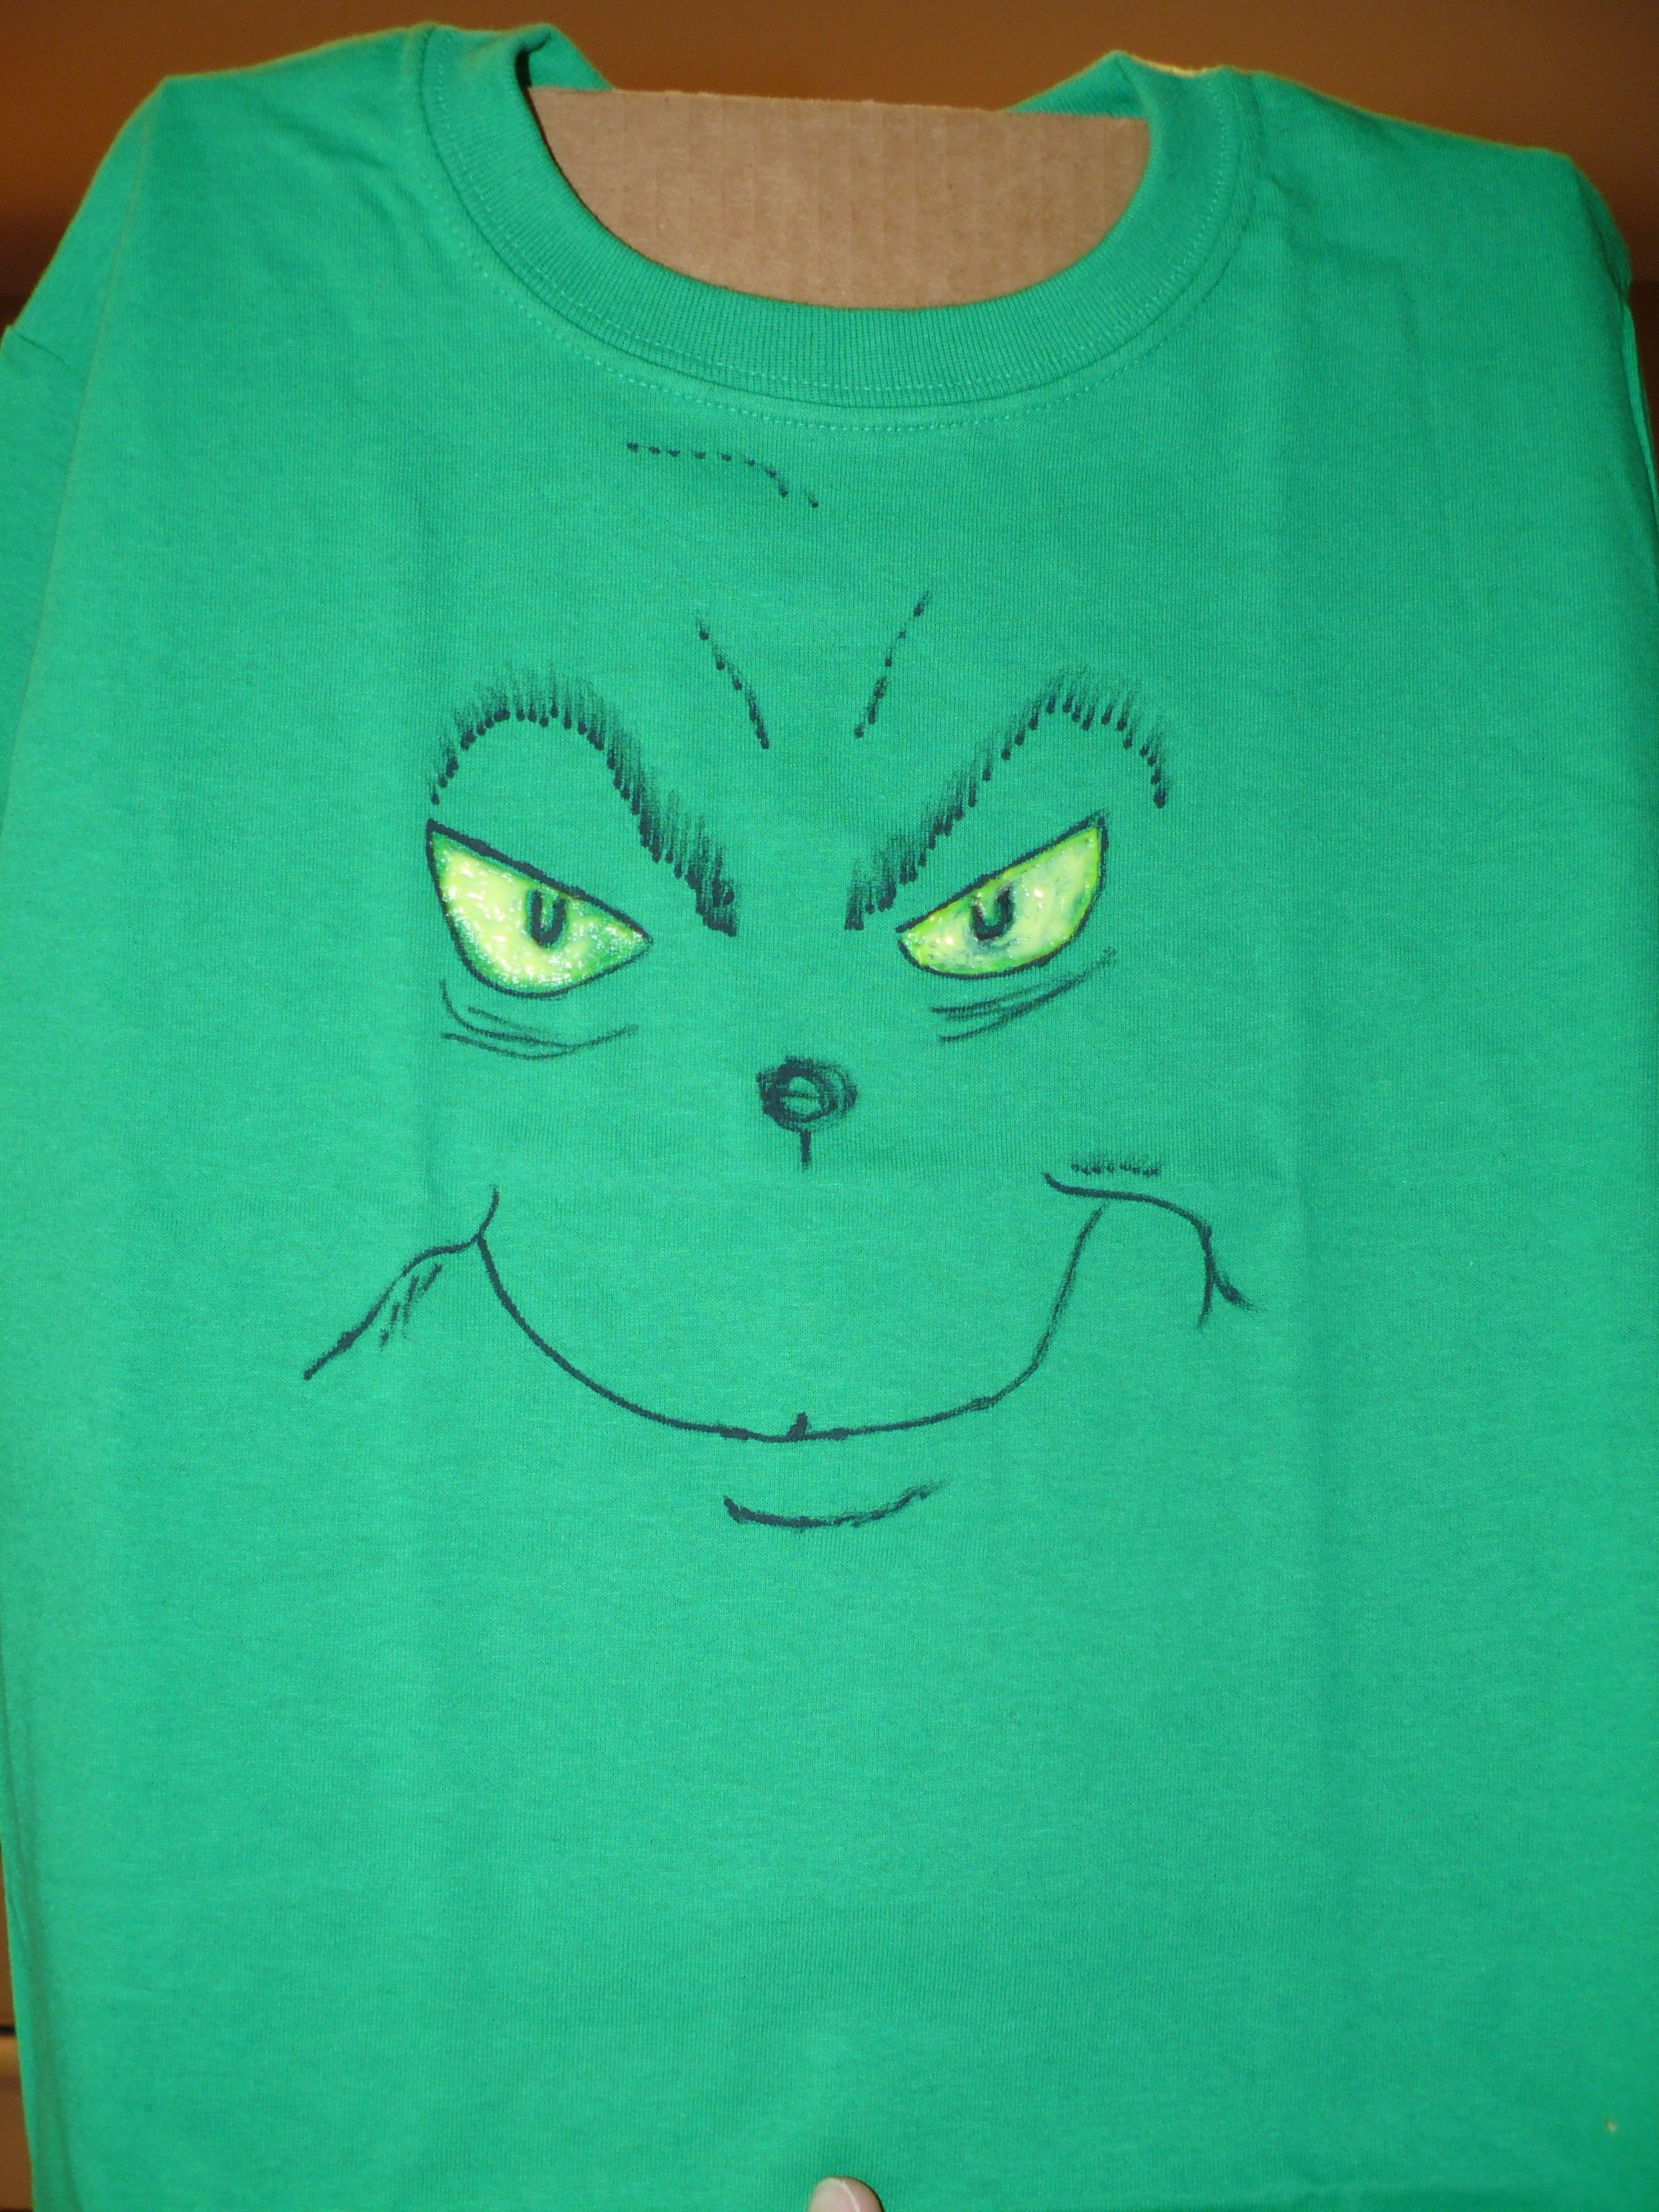 bd6b3d48 Made grinch face t-shirts for my kids for Dr. Seuss day. Green t-shirt,  neon yellow glow in the dark puffy paint, and black fabric paint marker.